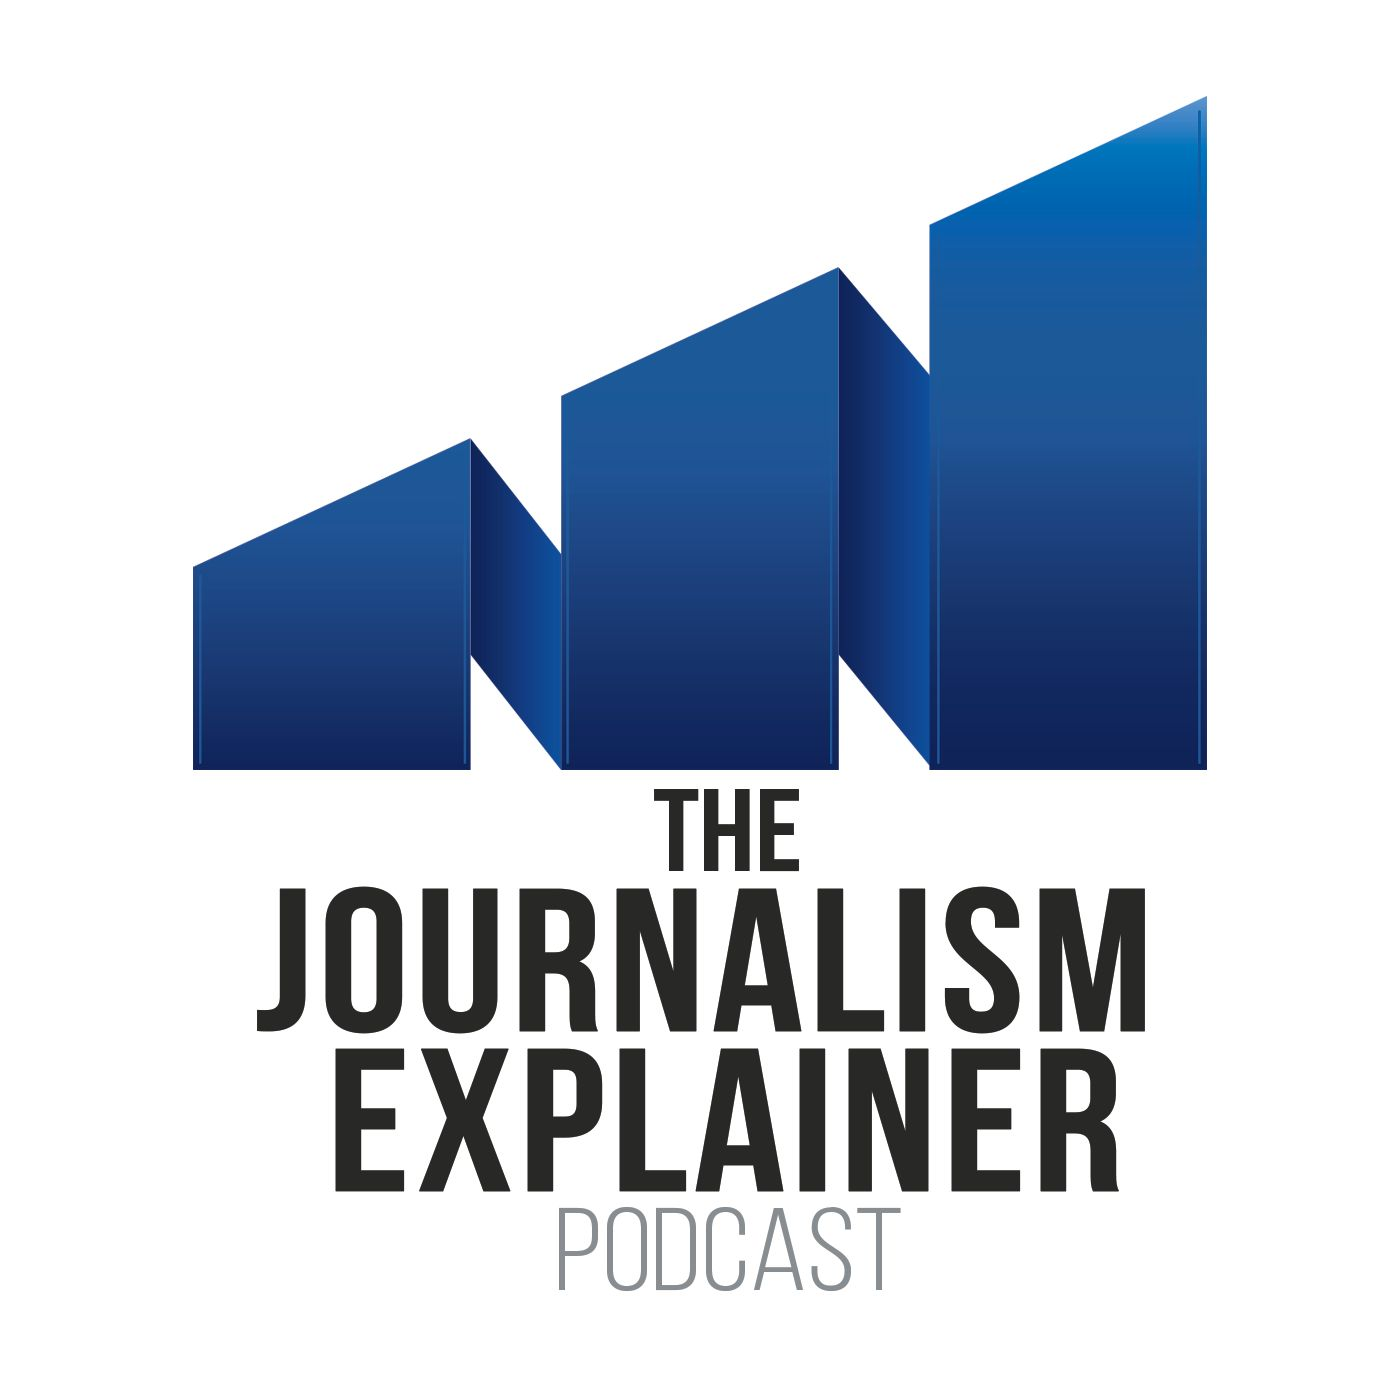 The Journalism Explainer